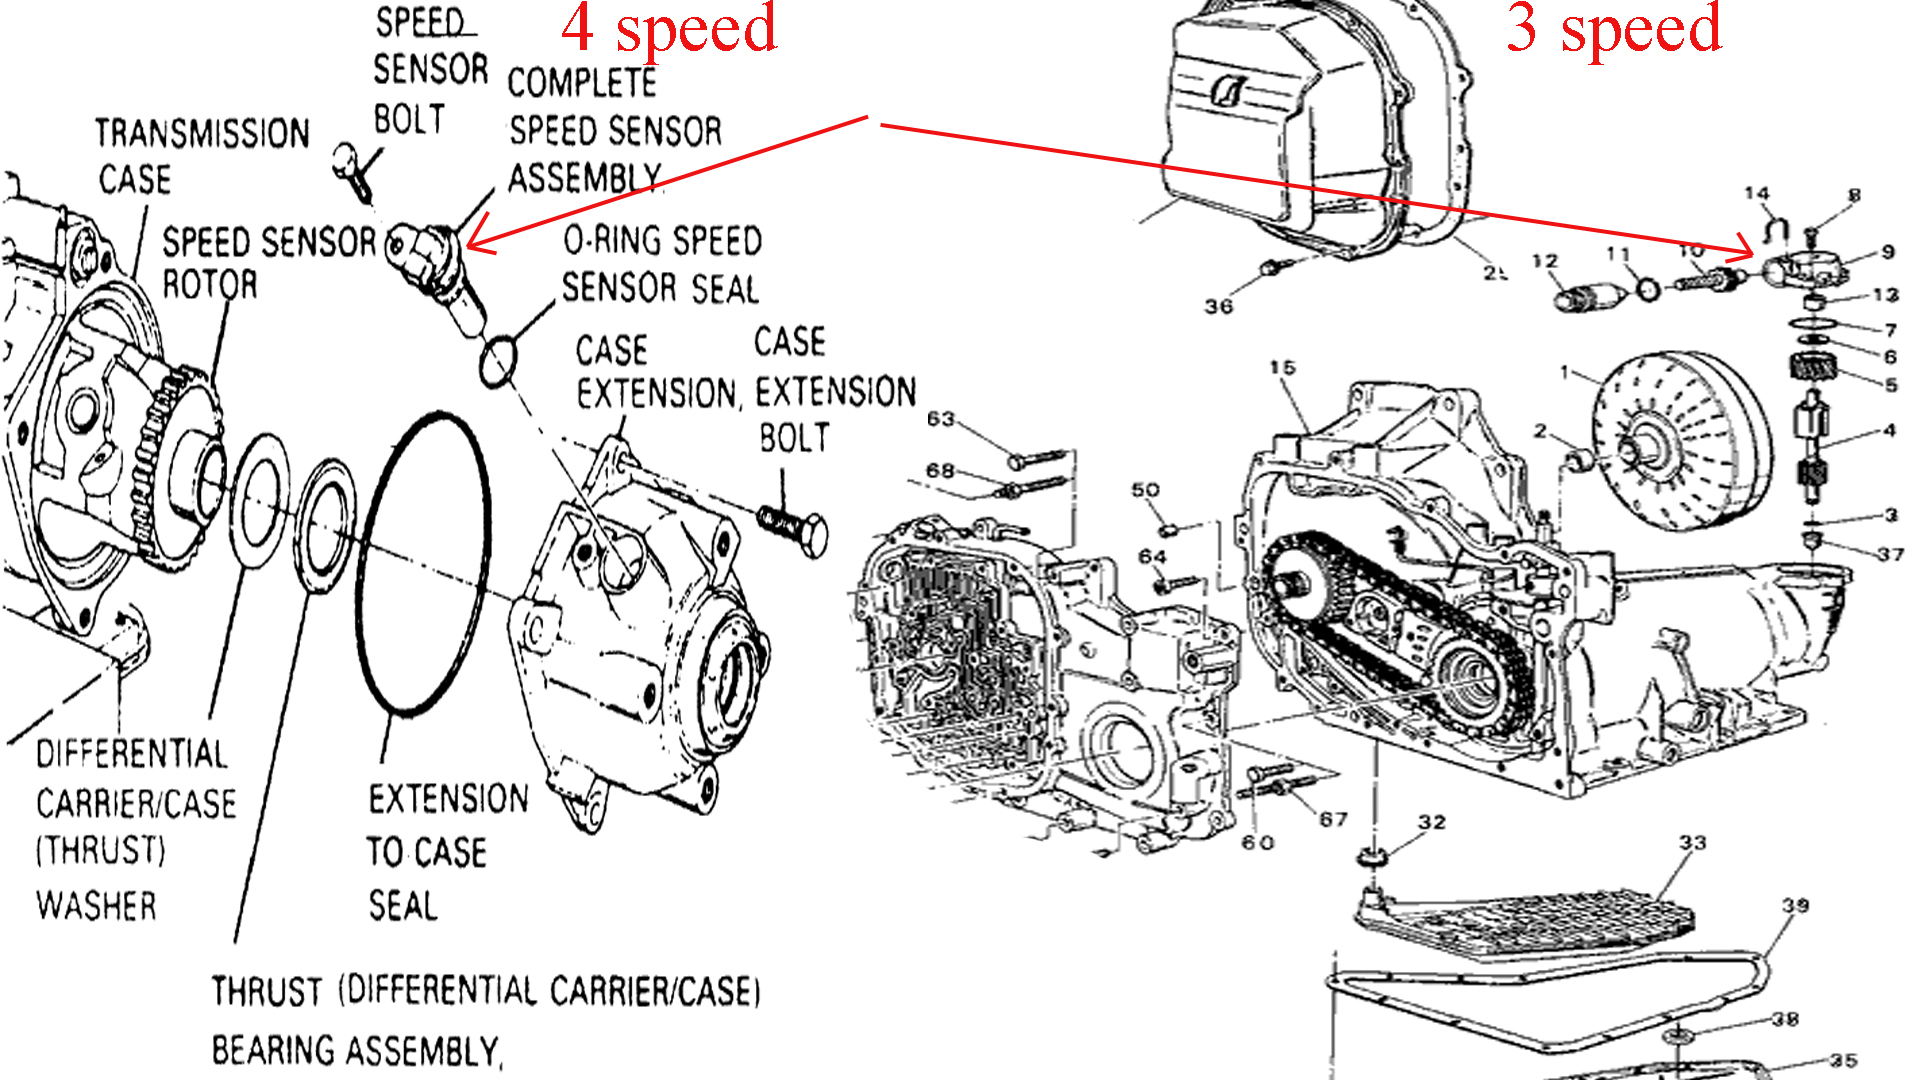 06 hummer h3 engine diagram html